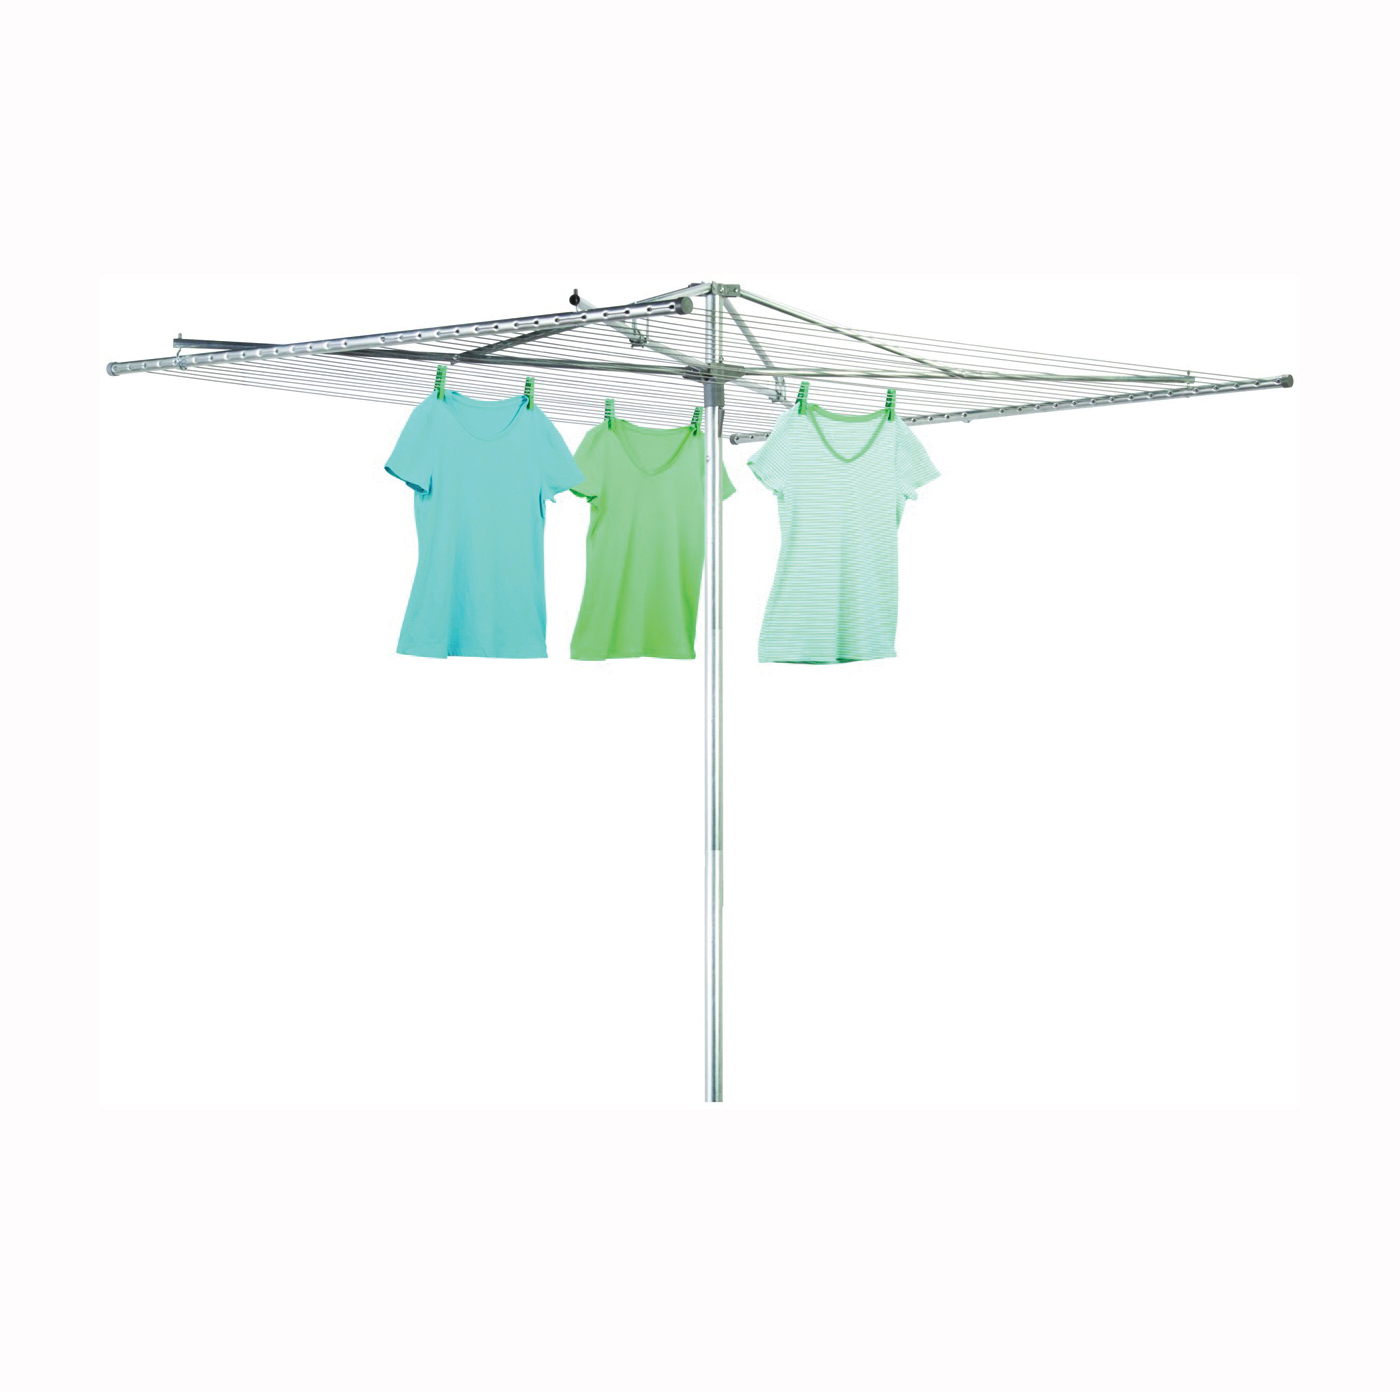 Picture of Honey-Can-Do DRY-02201 Umbrella Clothes Dryer, 72 in L, Steel